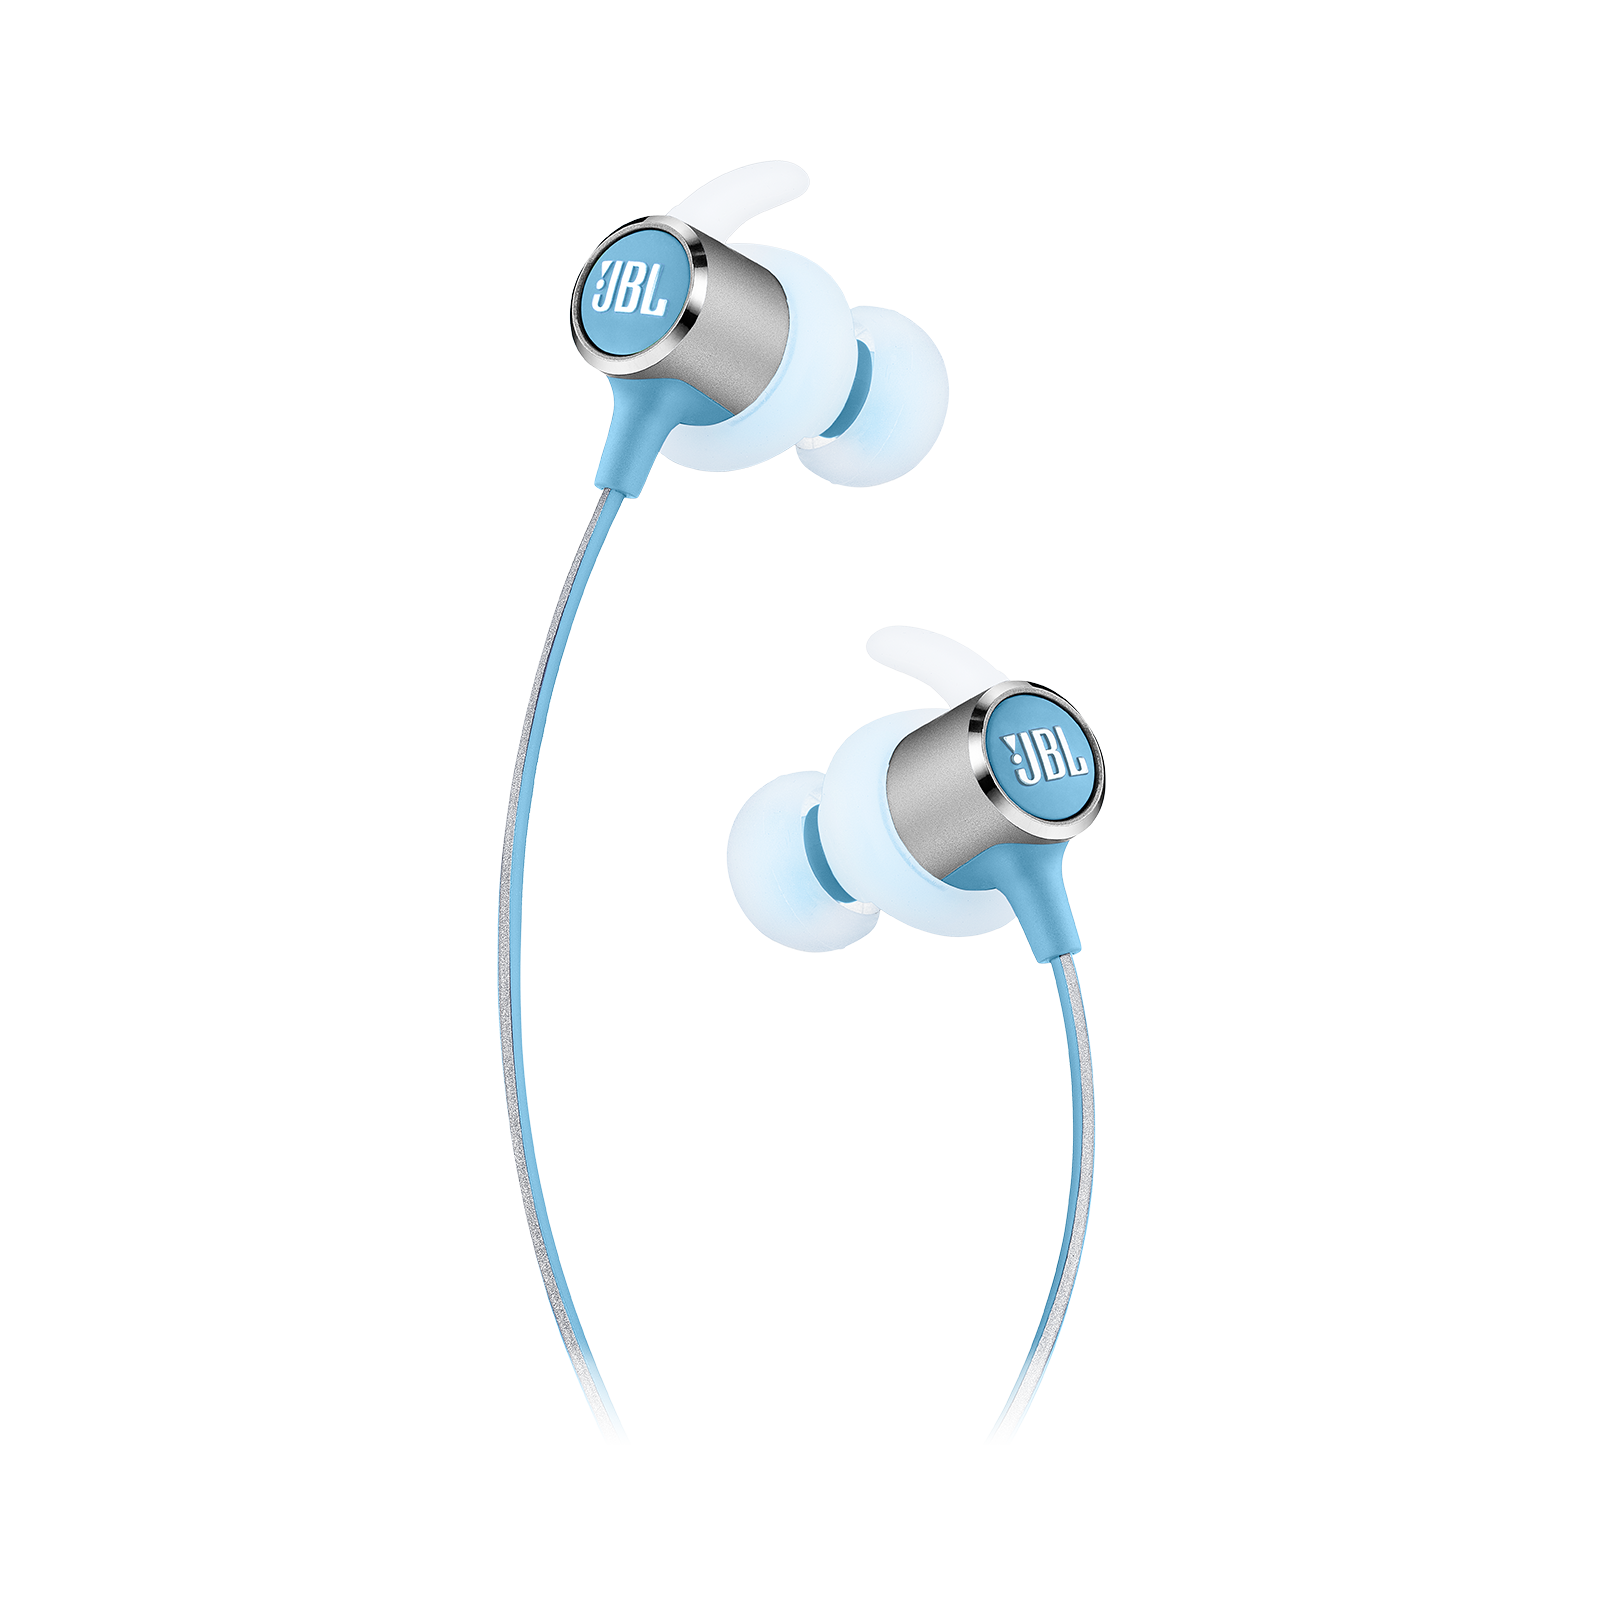 JBL REFLECT MINI 2 - Teal - Lightweight Wireless Sport Headphones - Detailshot 2